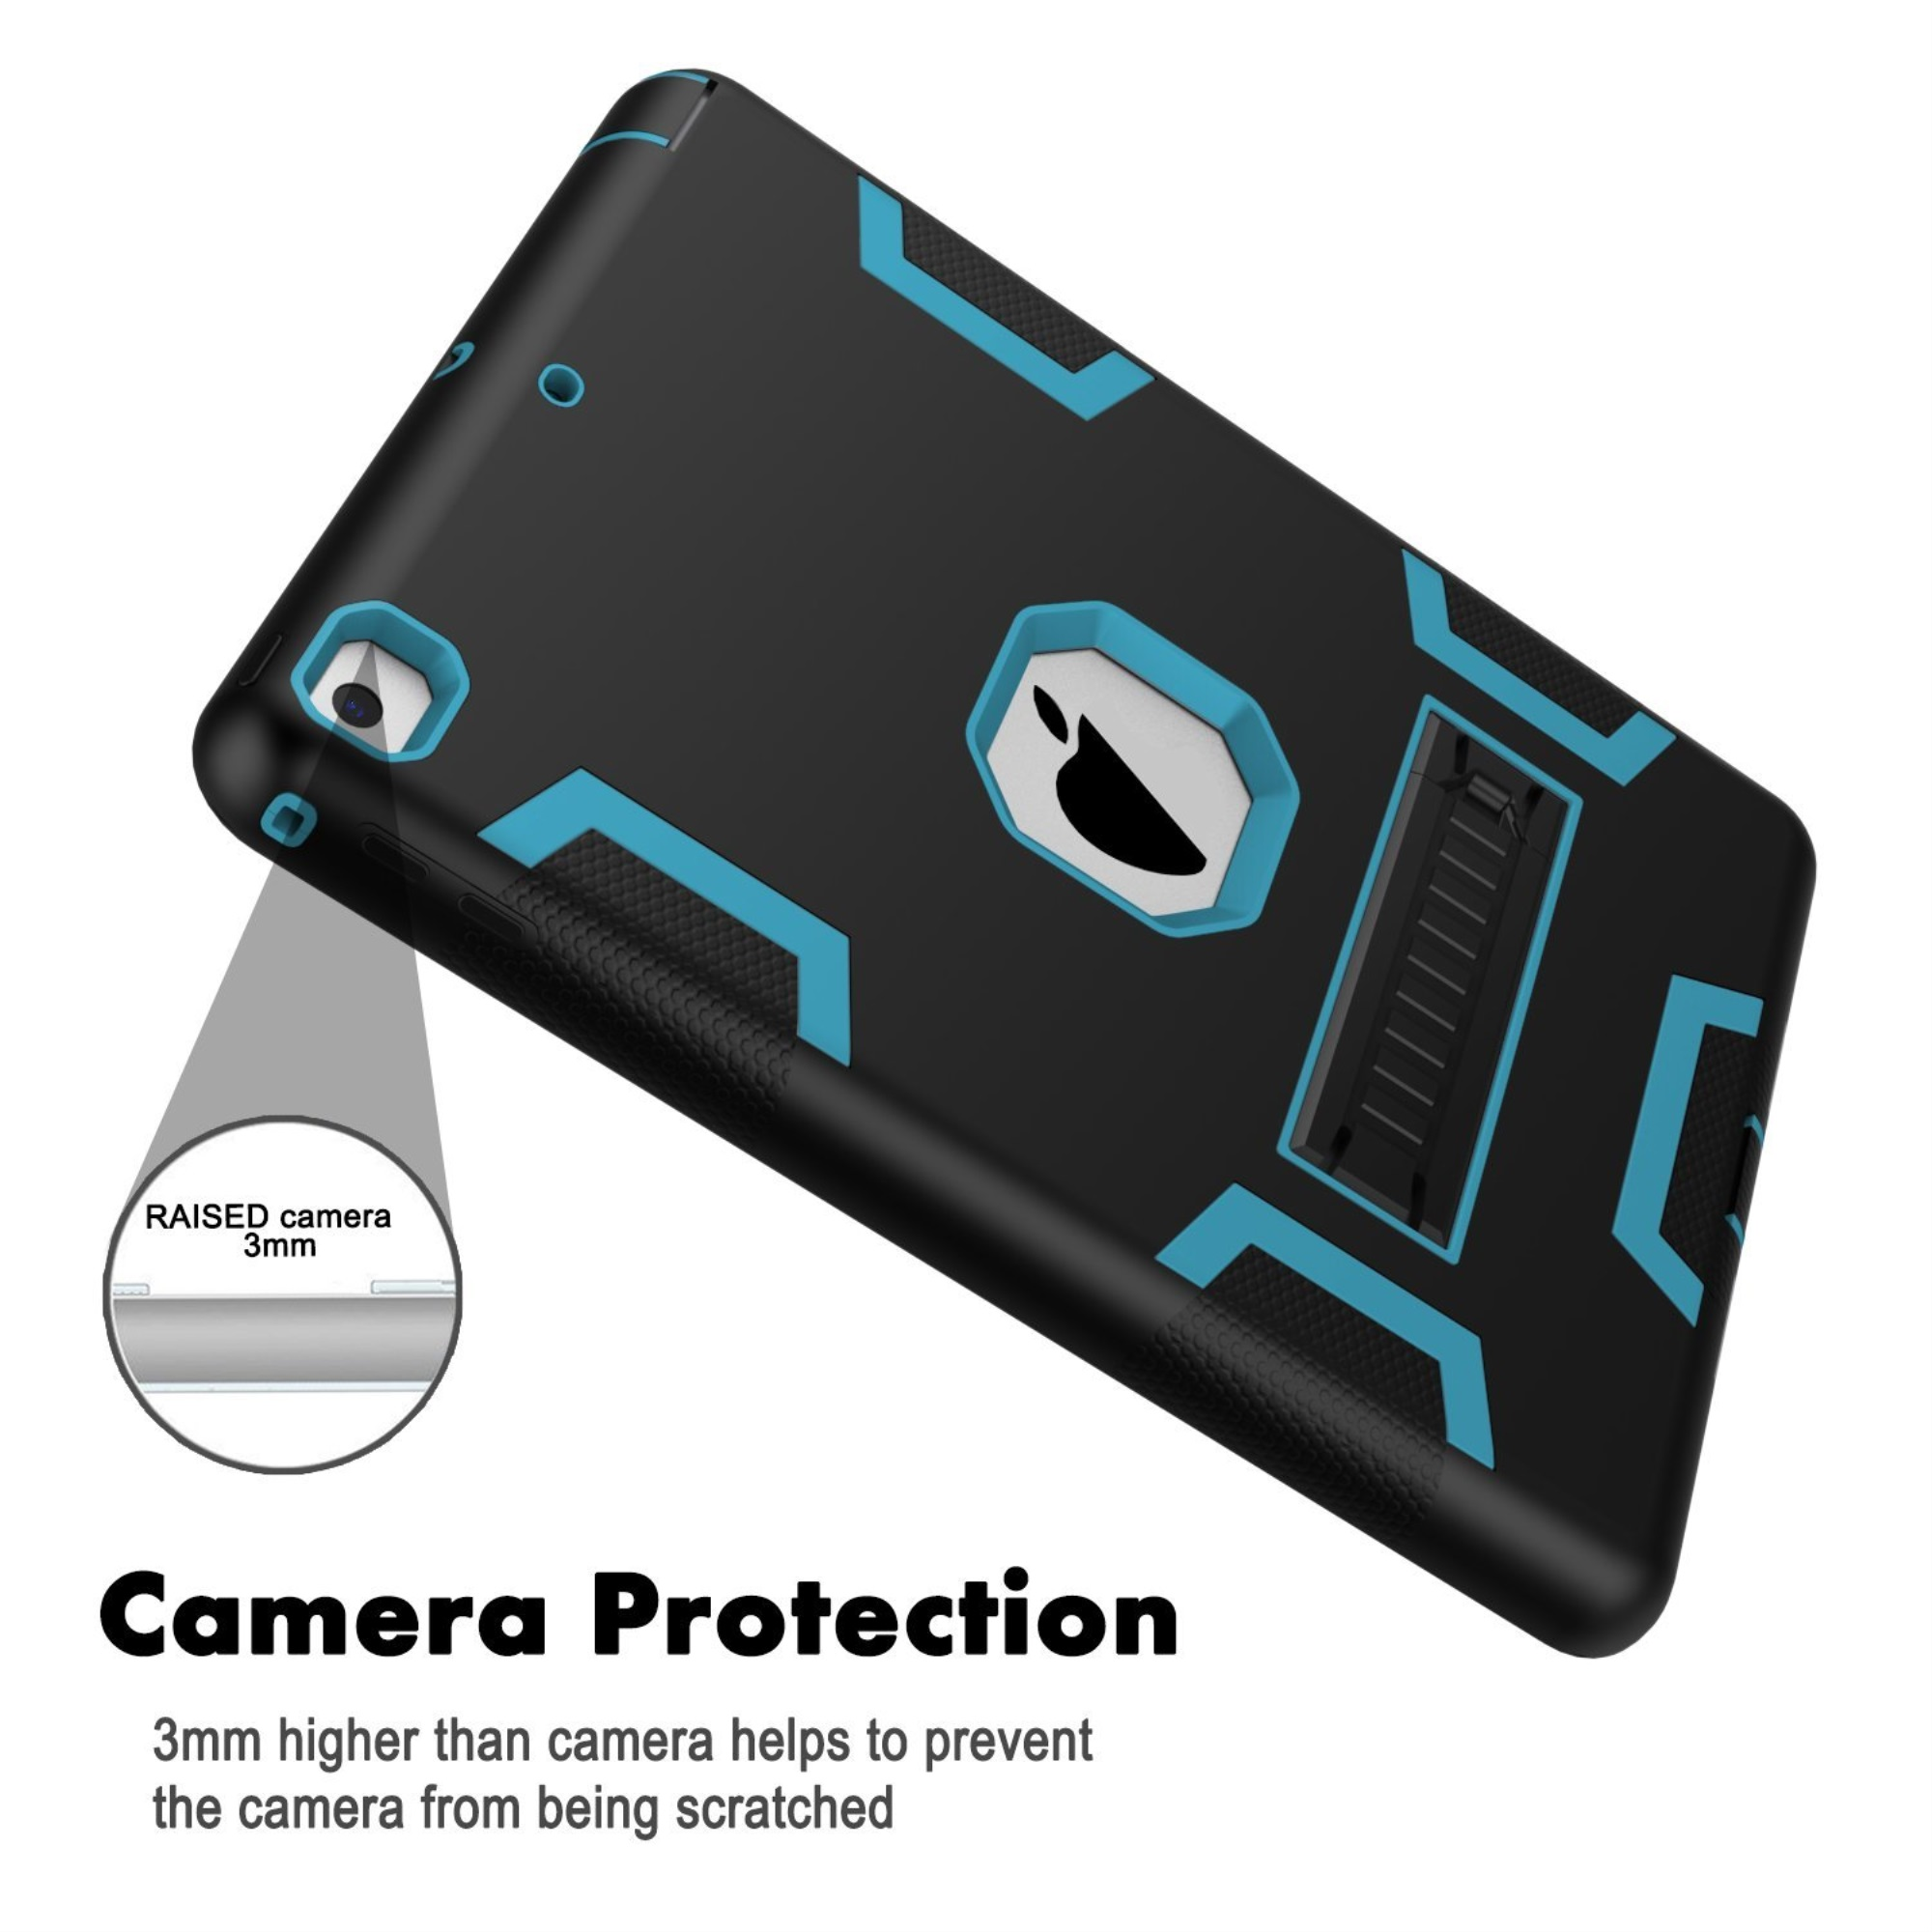 thumbnail 3 - For Apple IPad 2 A1395 / A1396 / A1397 Shockproof Duty Hard Stand Case Cover